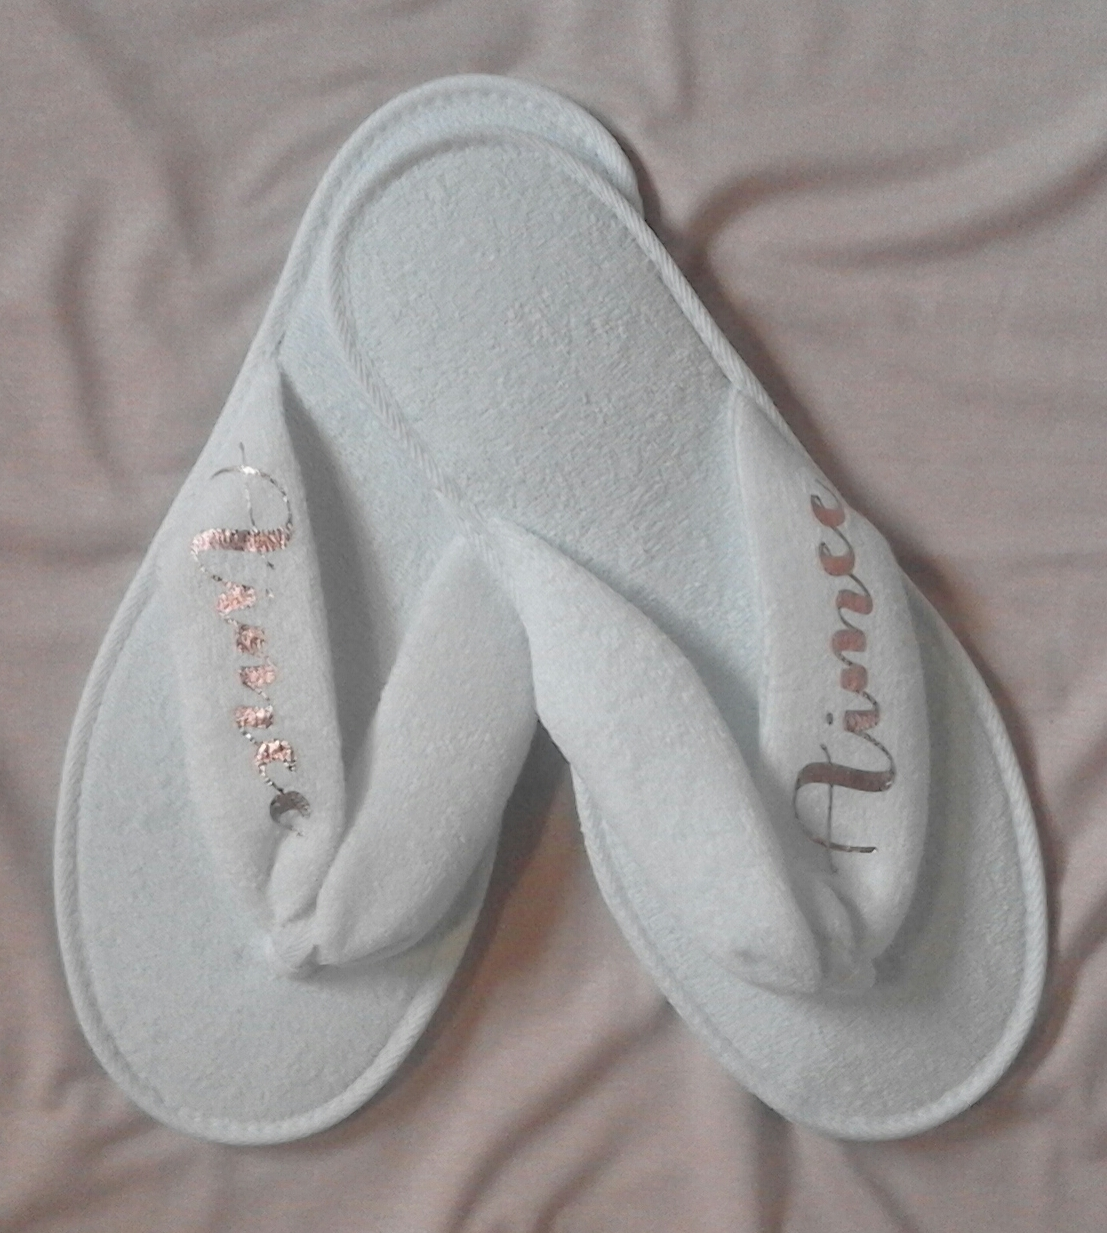 slippers--ladiesmen's-kids-slippers--open-toe-thong-&amp-closed-toe-style-